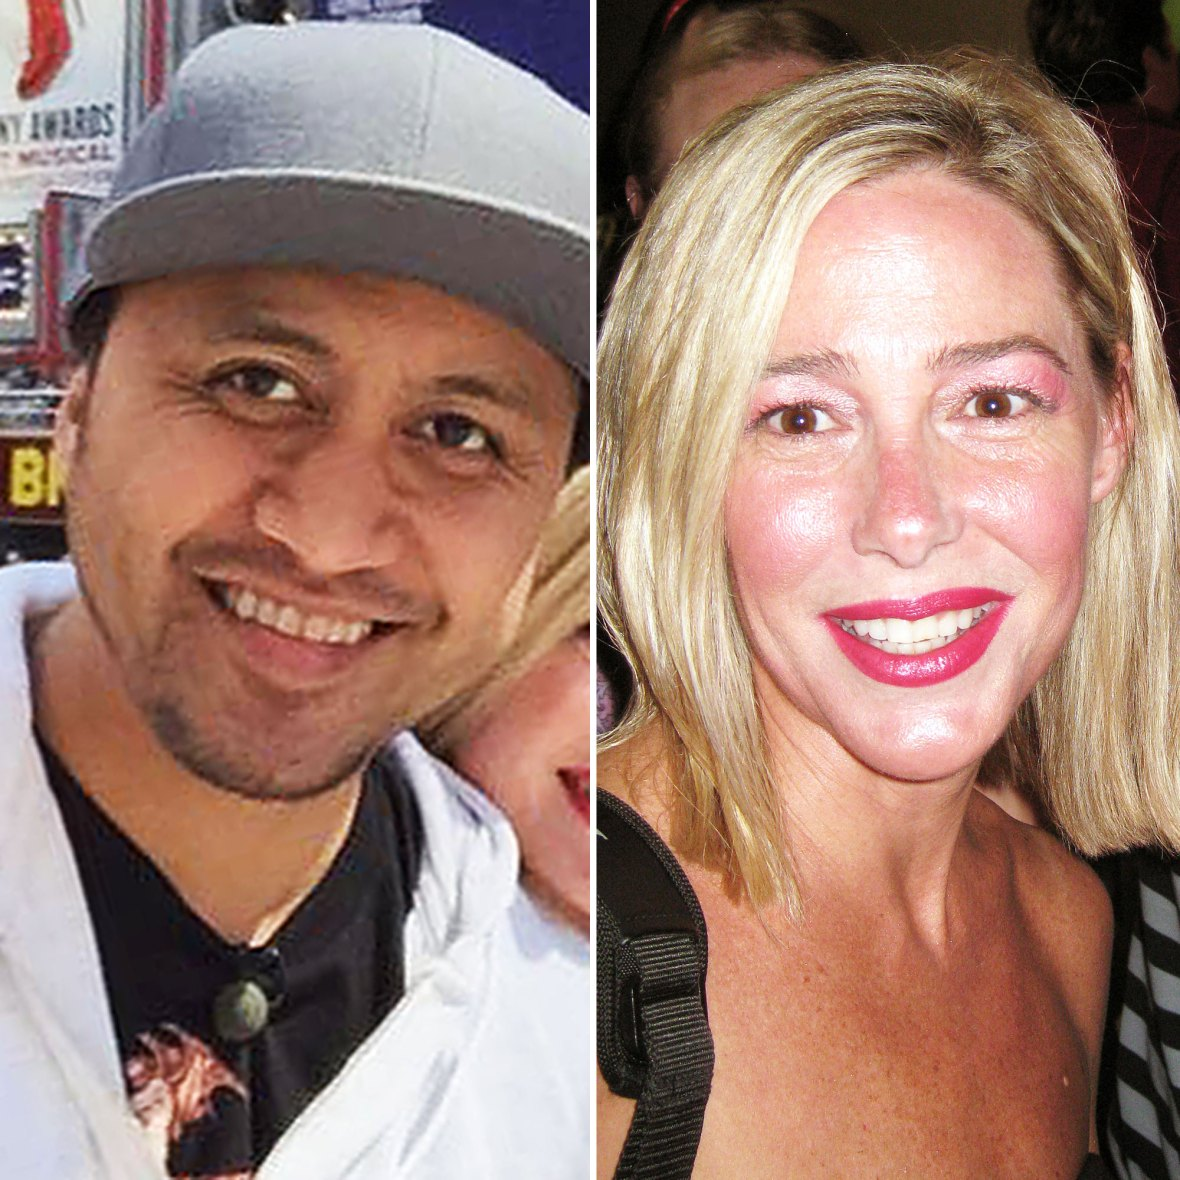 Vili Fualaau Friend Says He Lost a Piece of Himself After Ex Mary Kay Letourneau Death